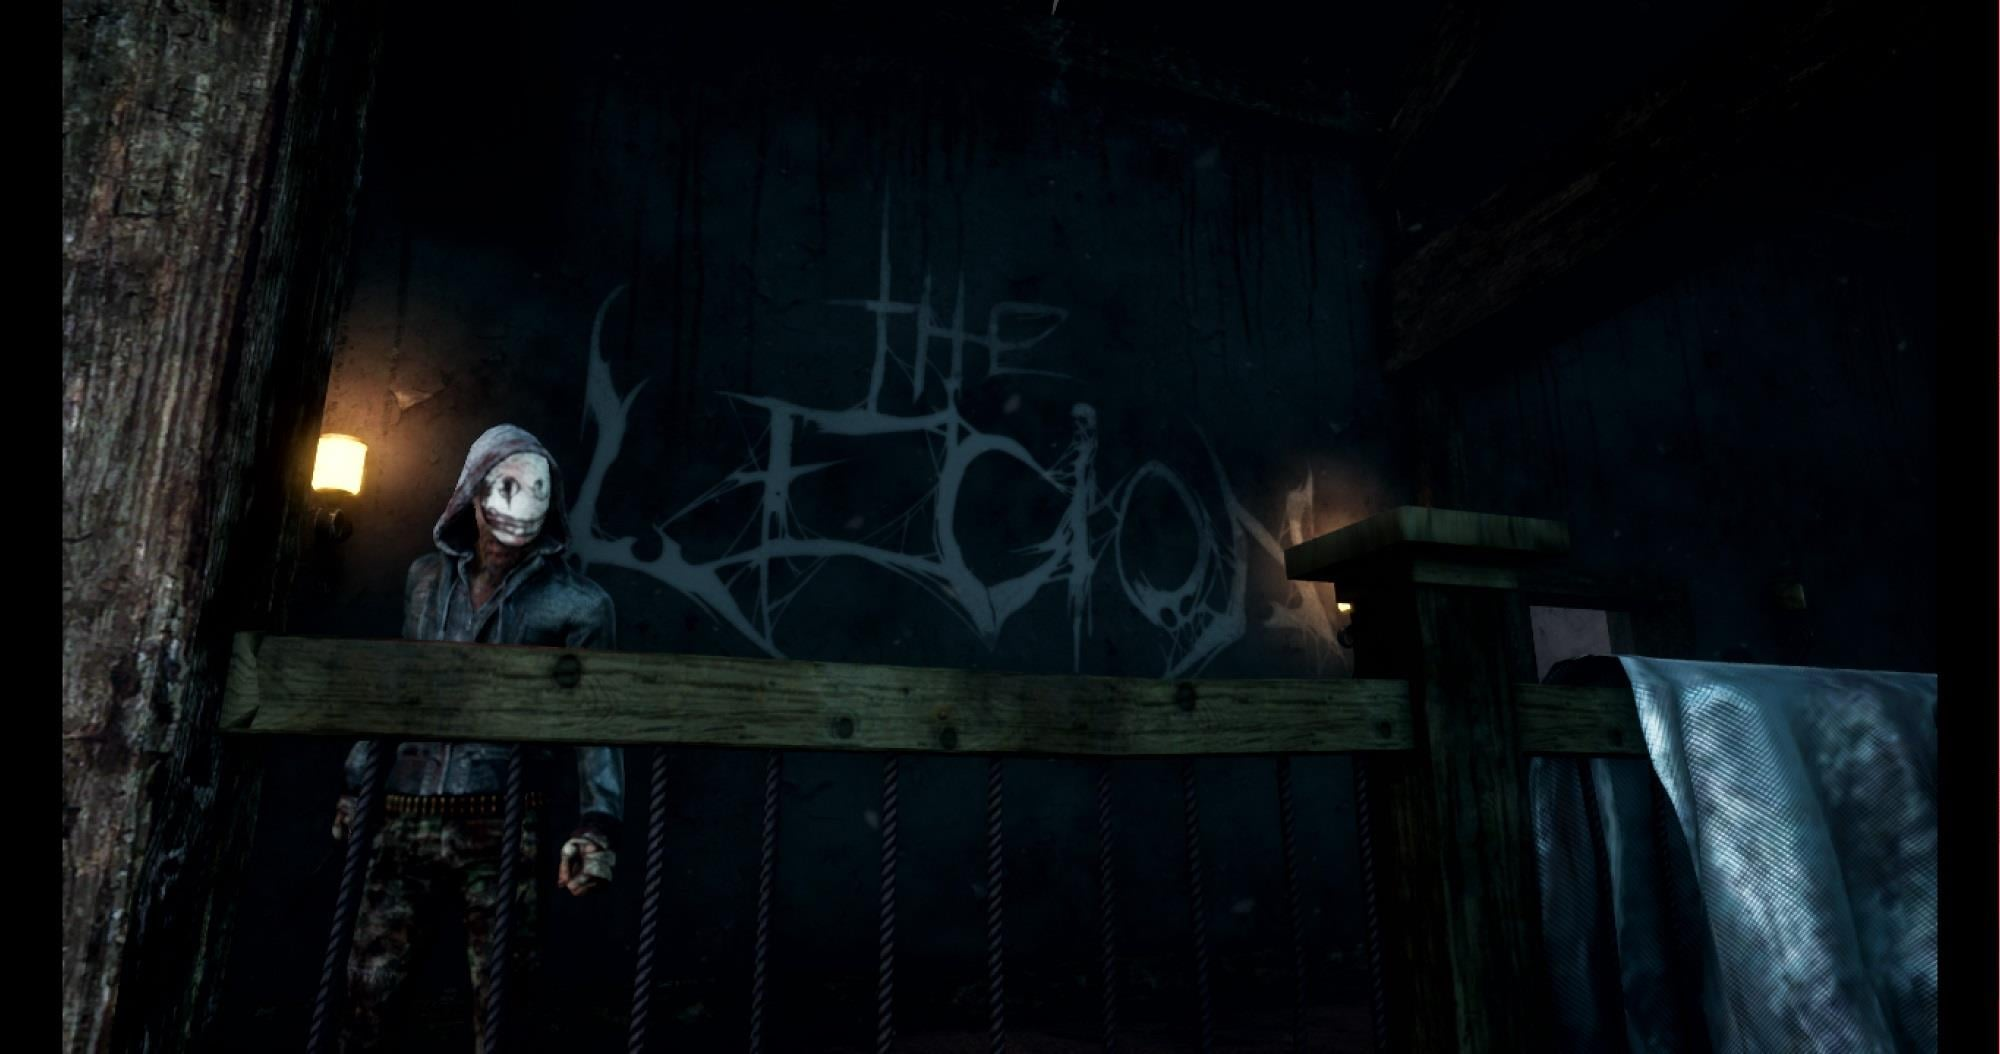 Dead By Daylight Reveals The Darkness Among Us